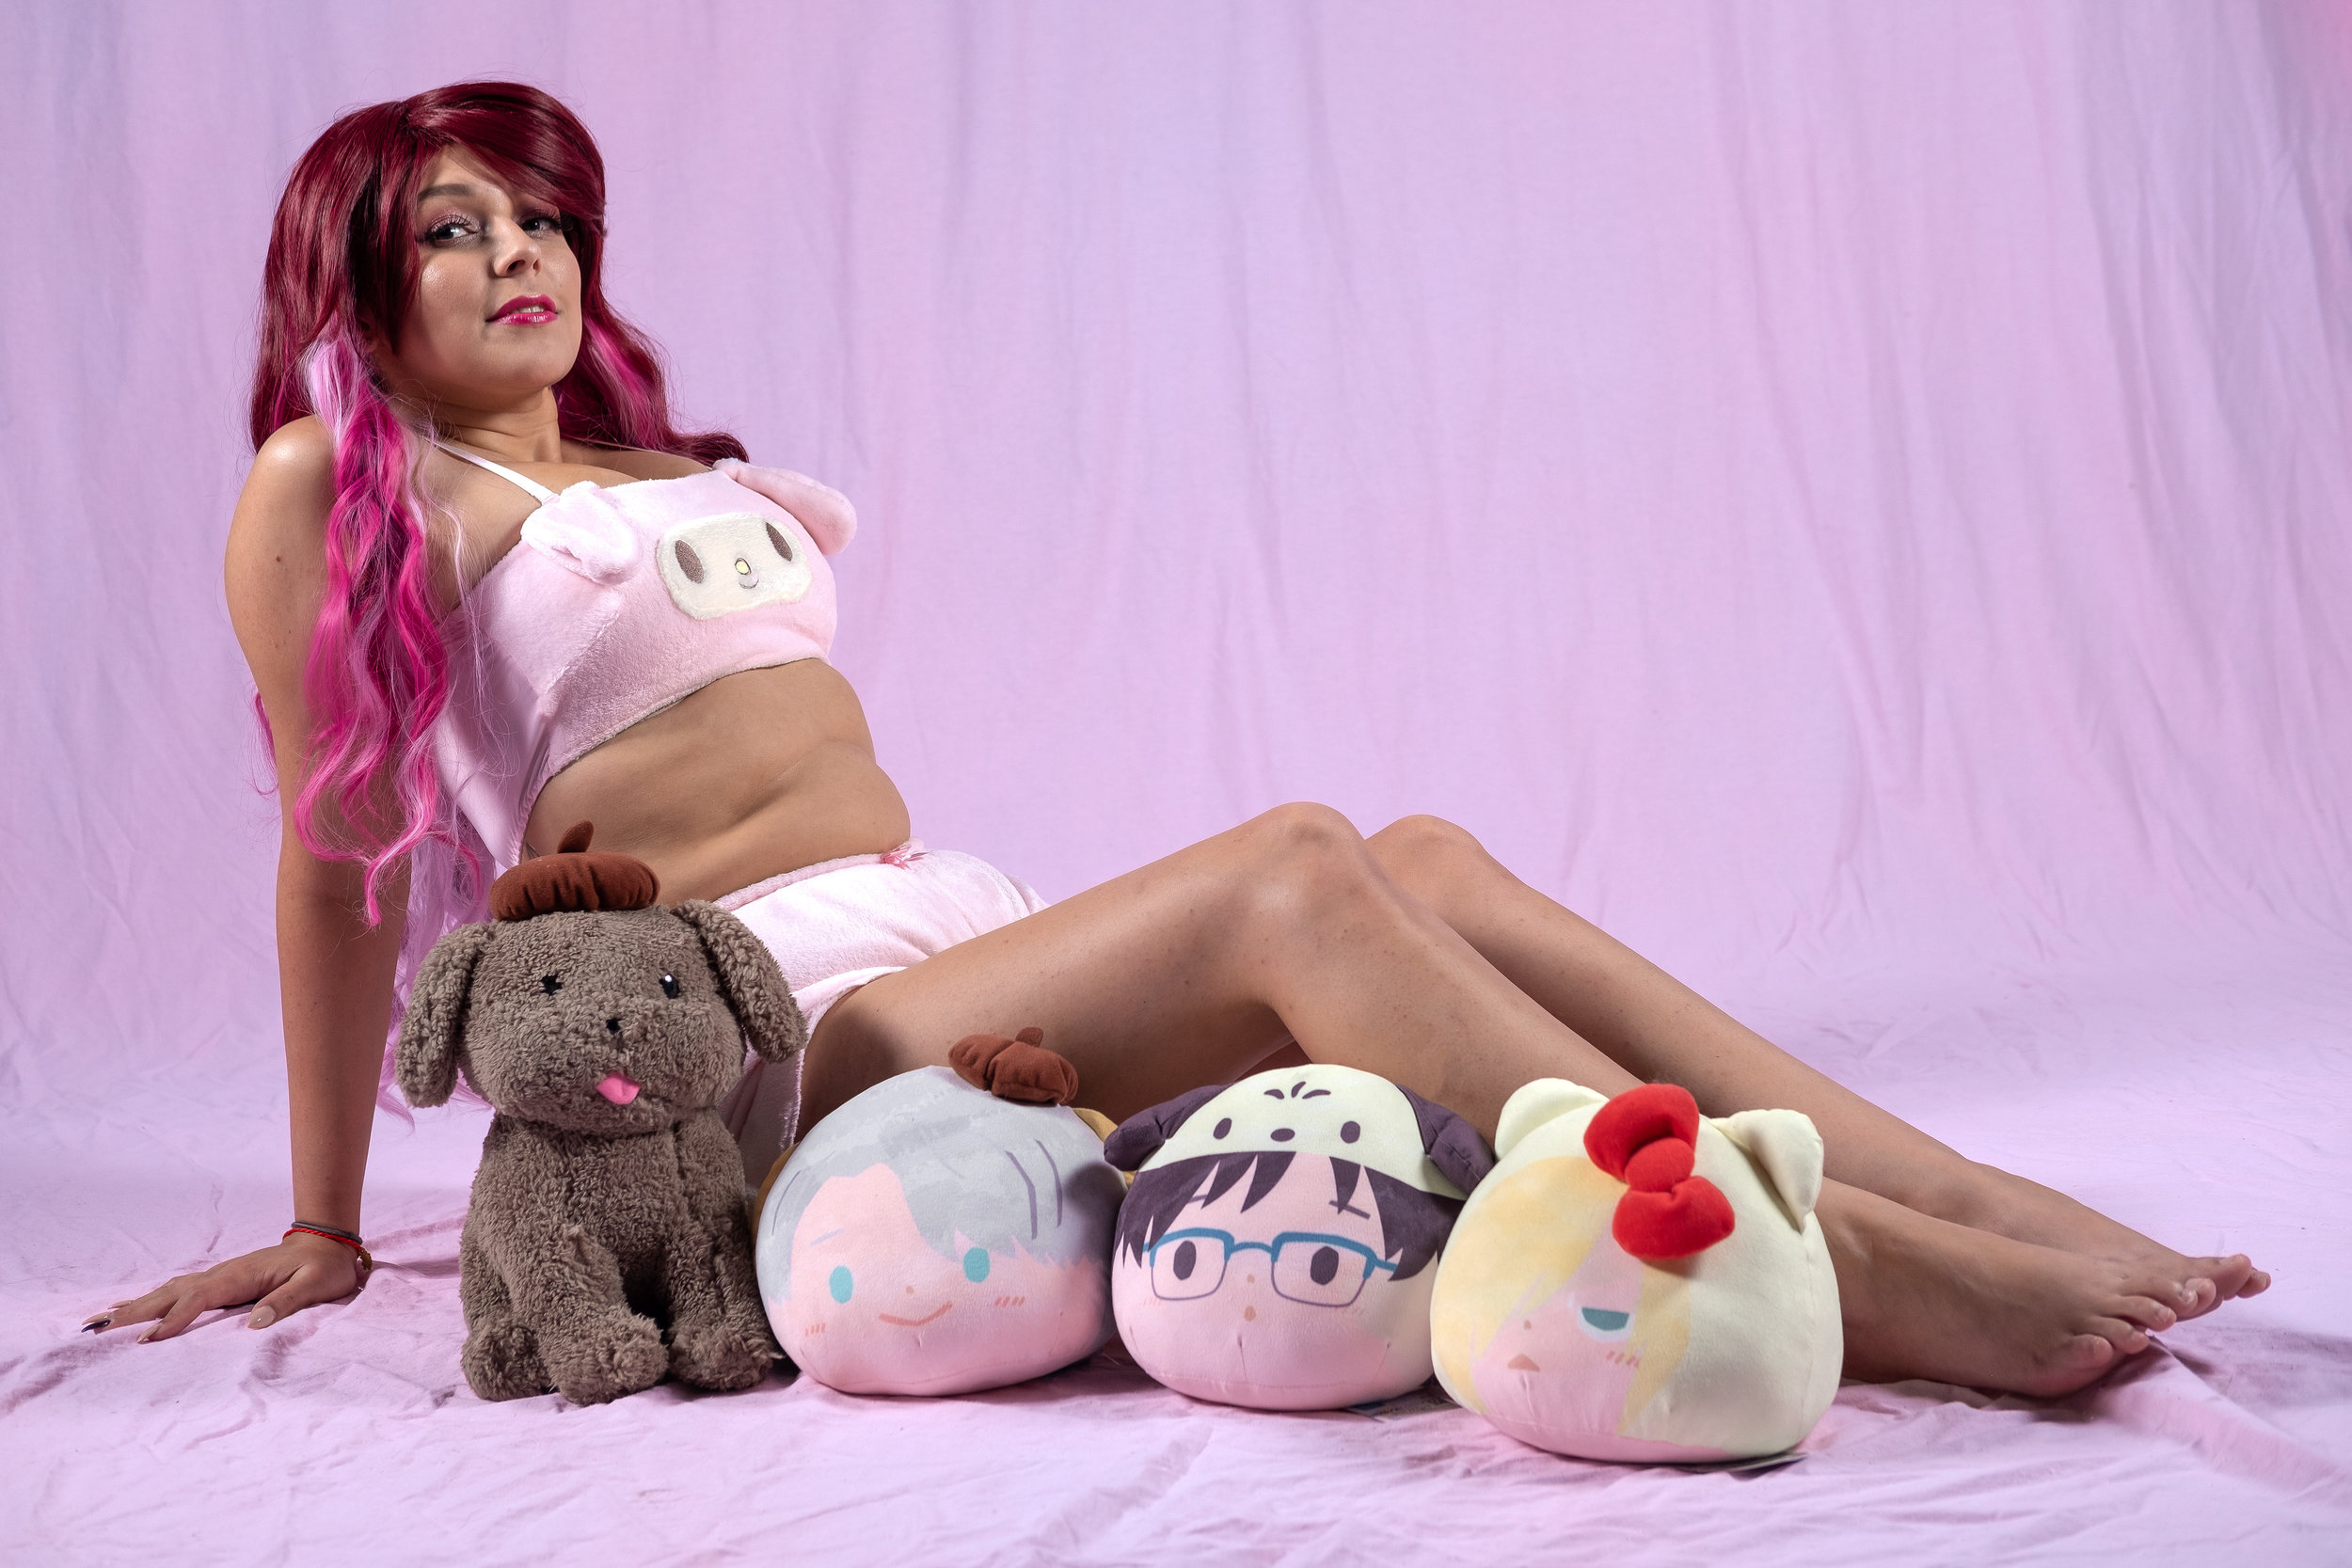 Mermaid Child posing with the My Melody lingerie set from Sanrio